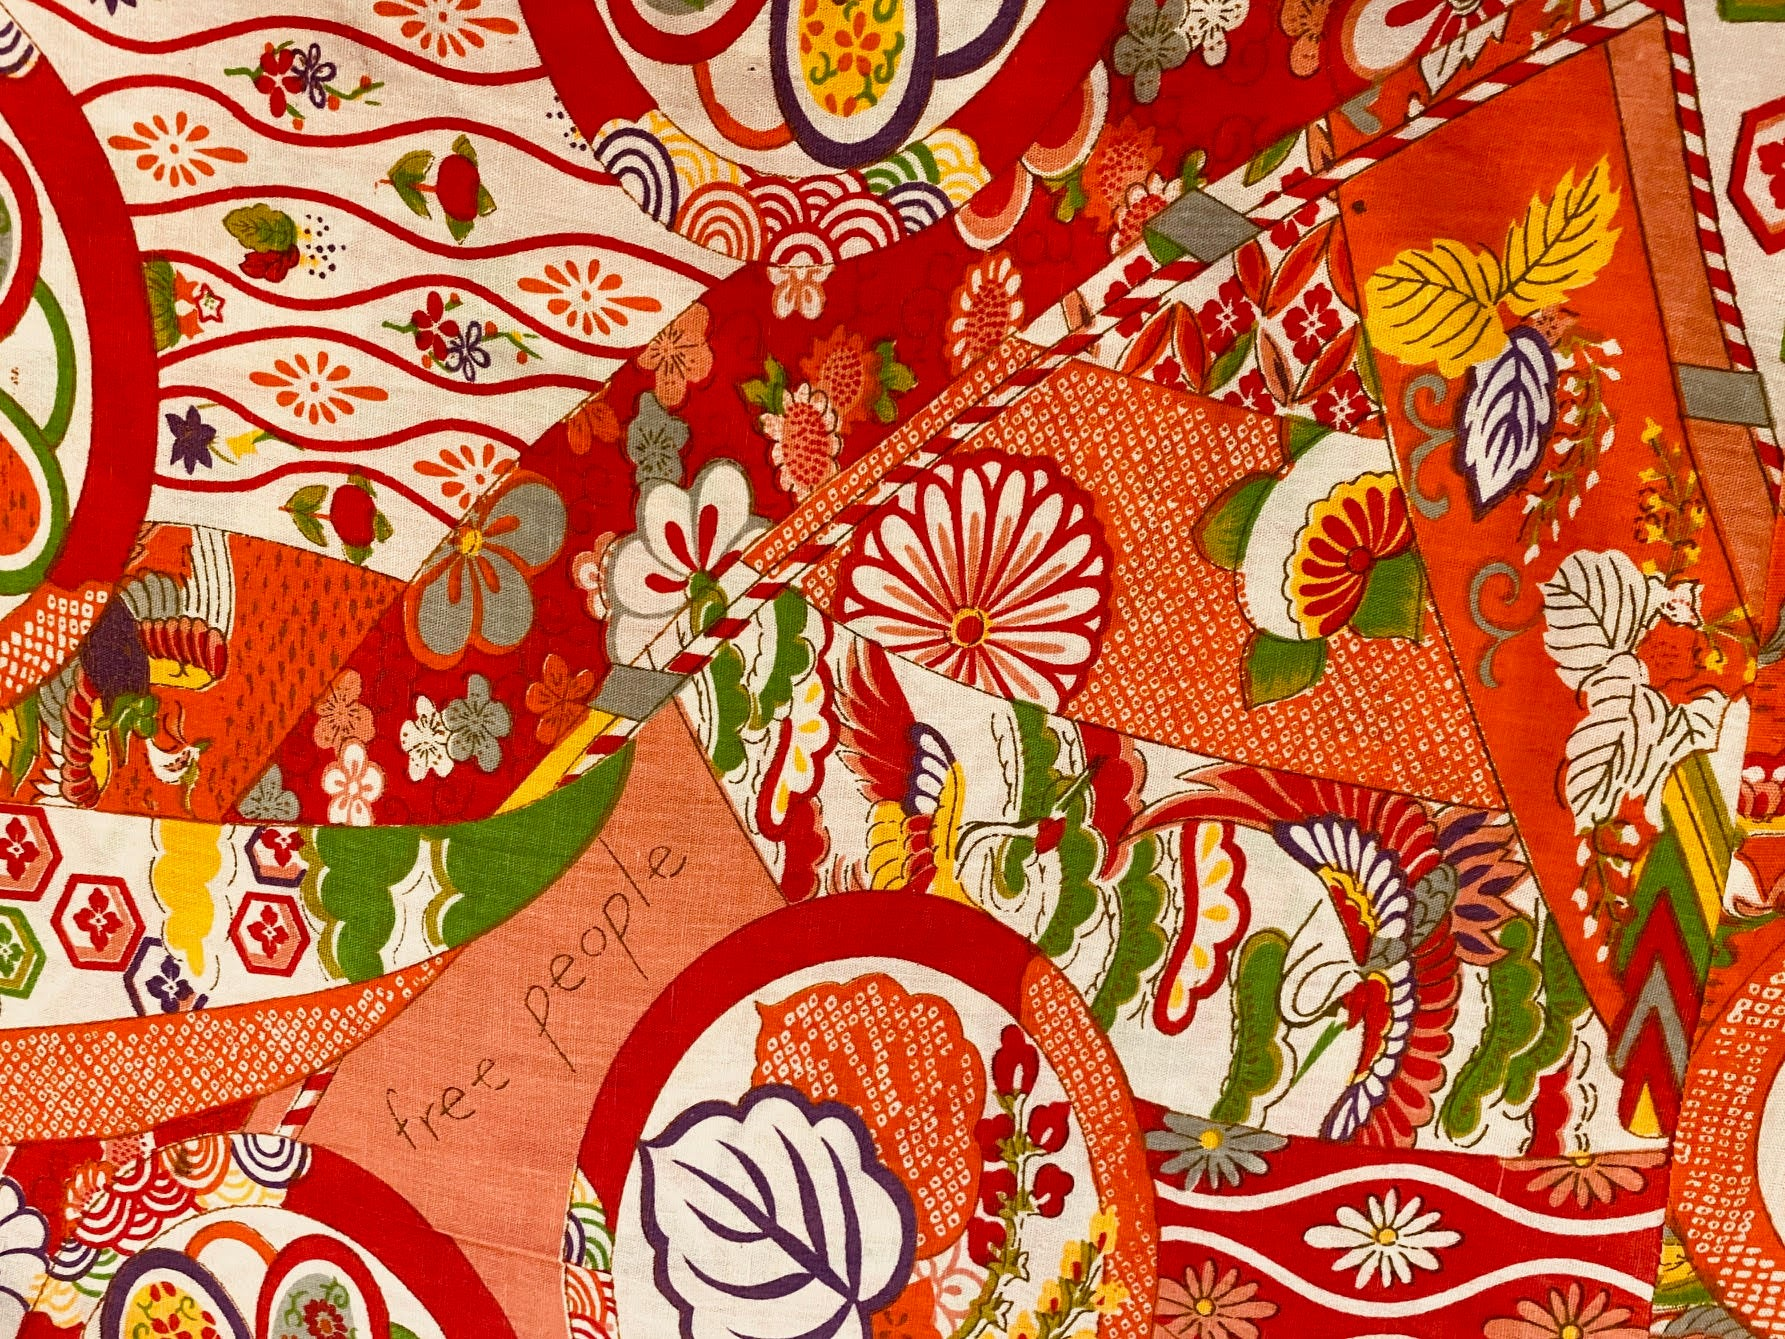 Free People Japanese Inspired Print in Orange Custom Made Cotton Cloth Mask